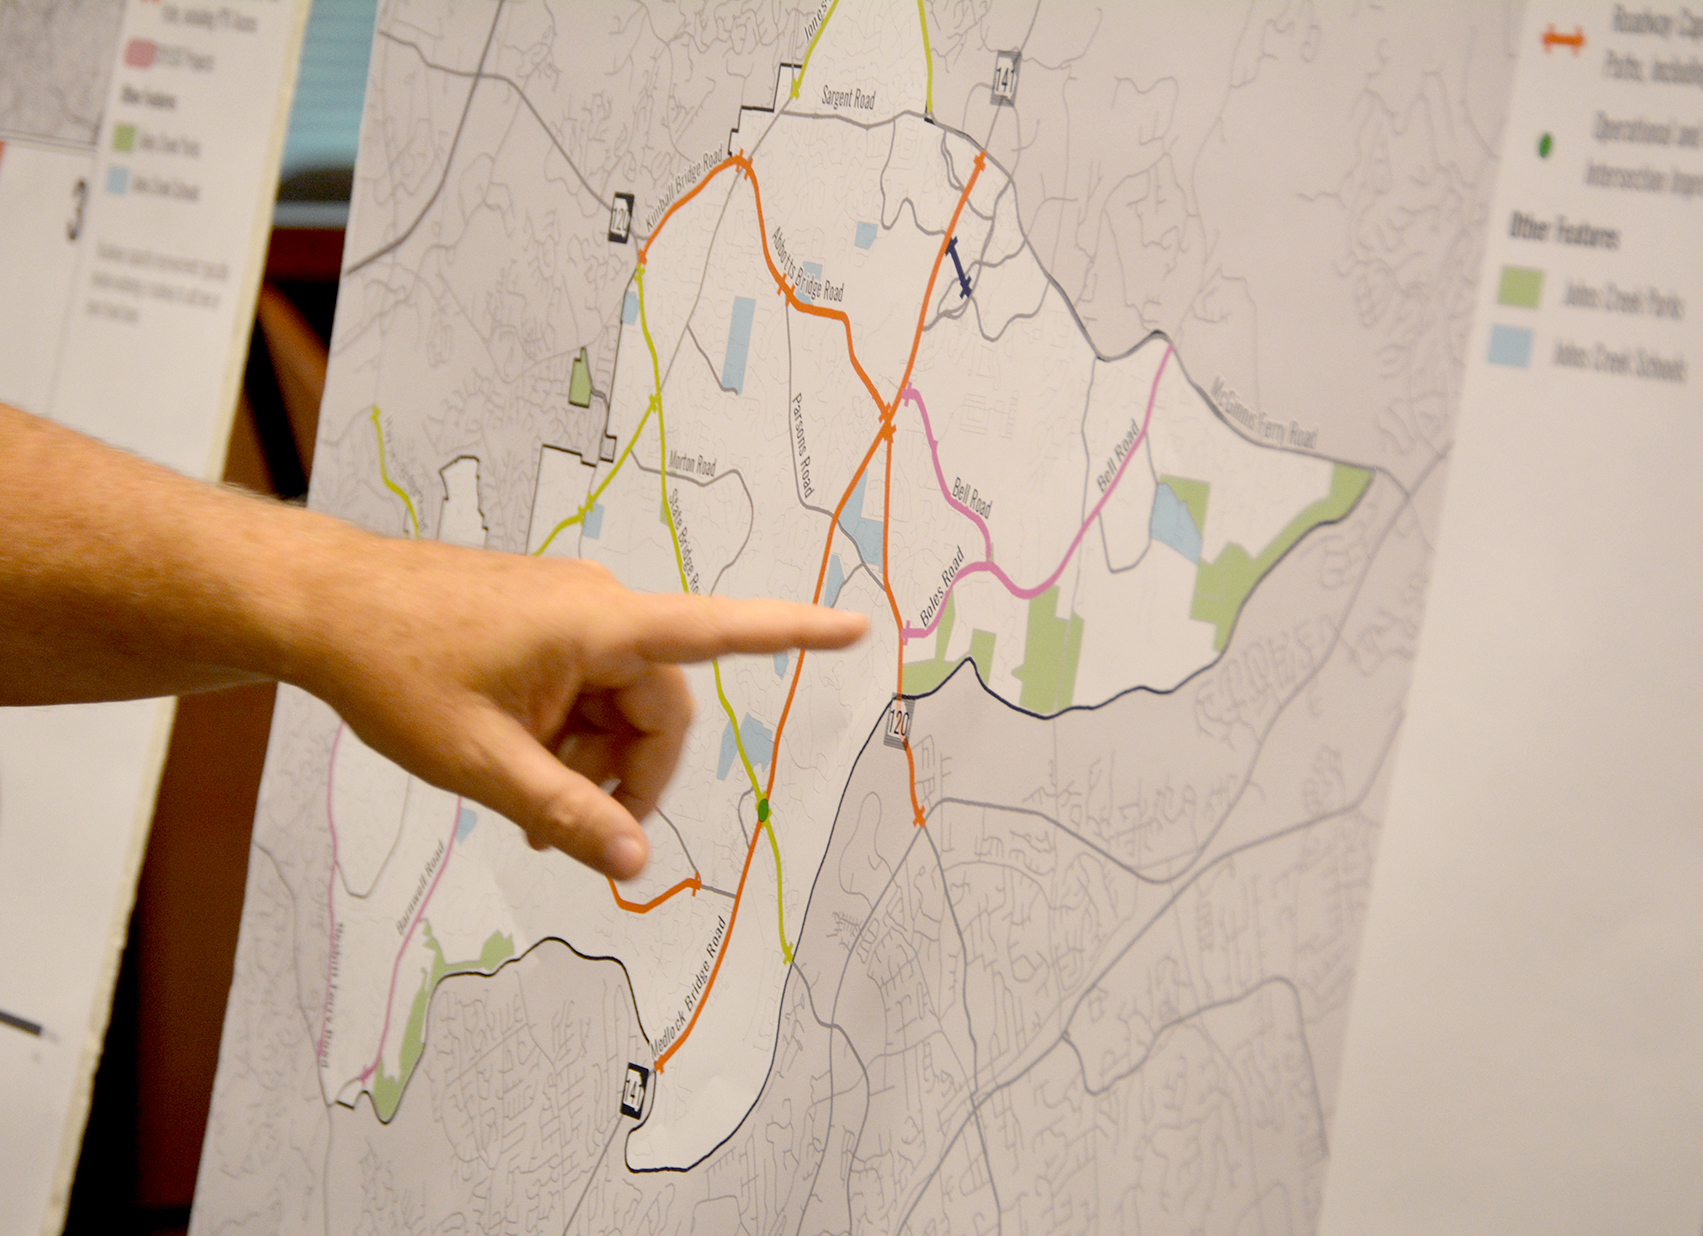 Johns Creek seeks community input on draft version of its 2017 Comprehensive Plan